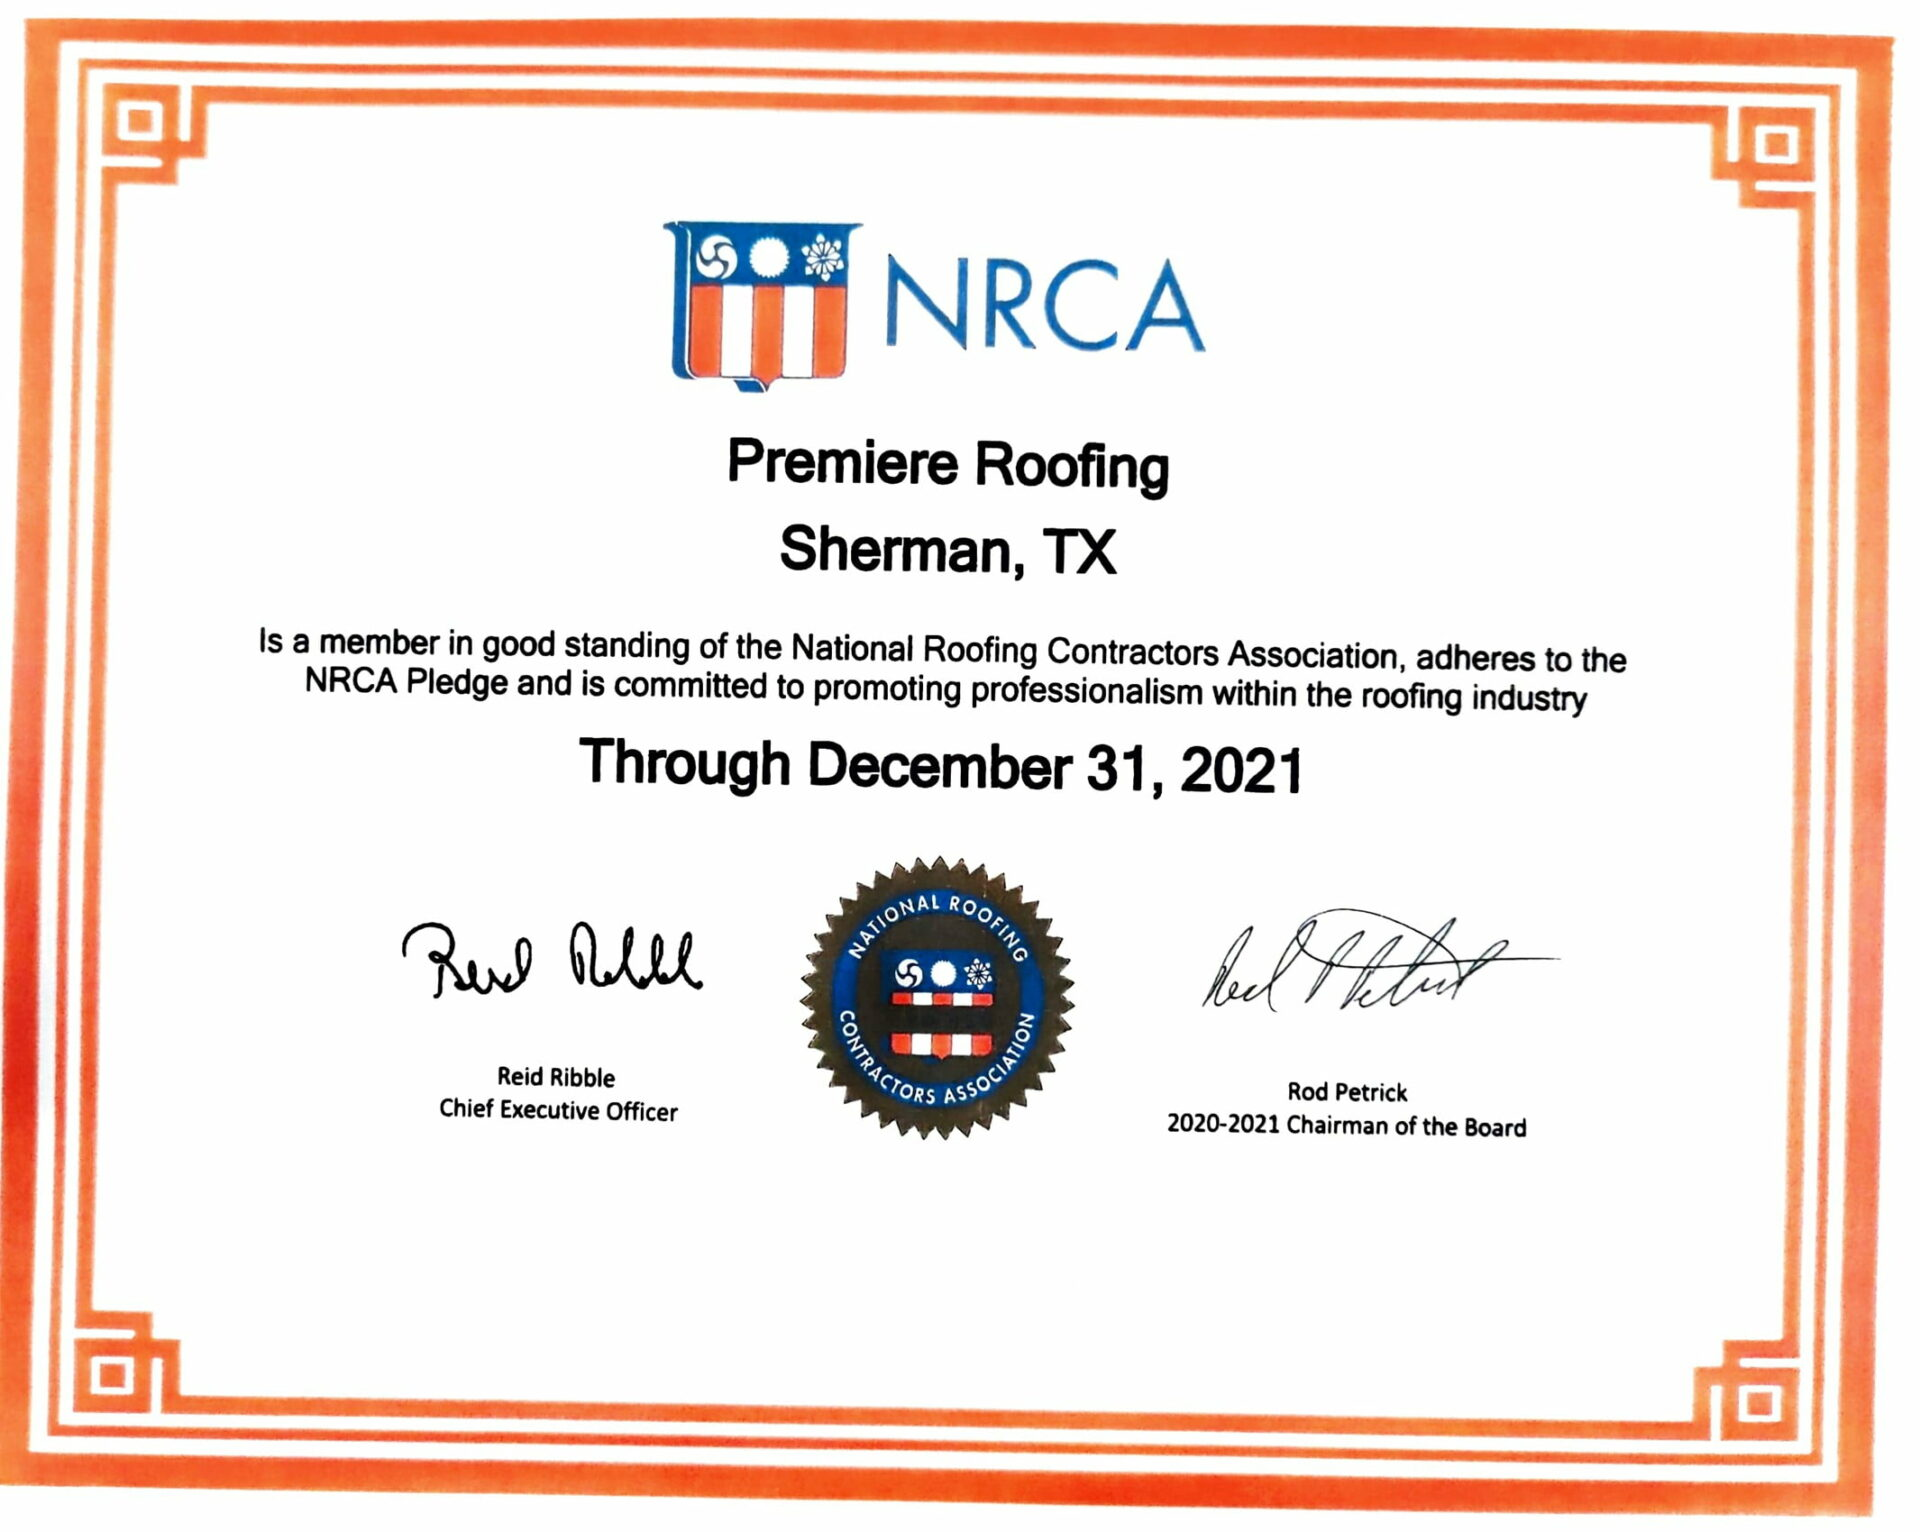 NRCA Premiere Roofing Certificate